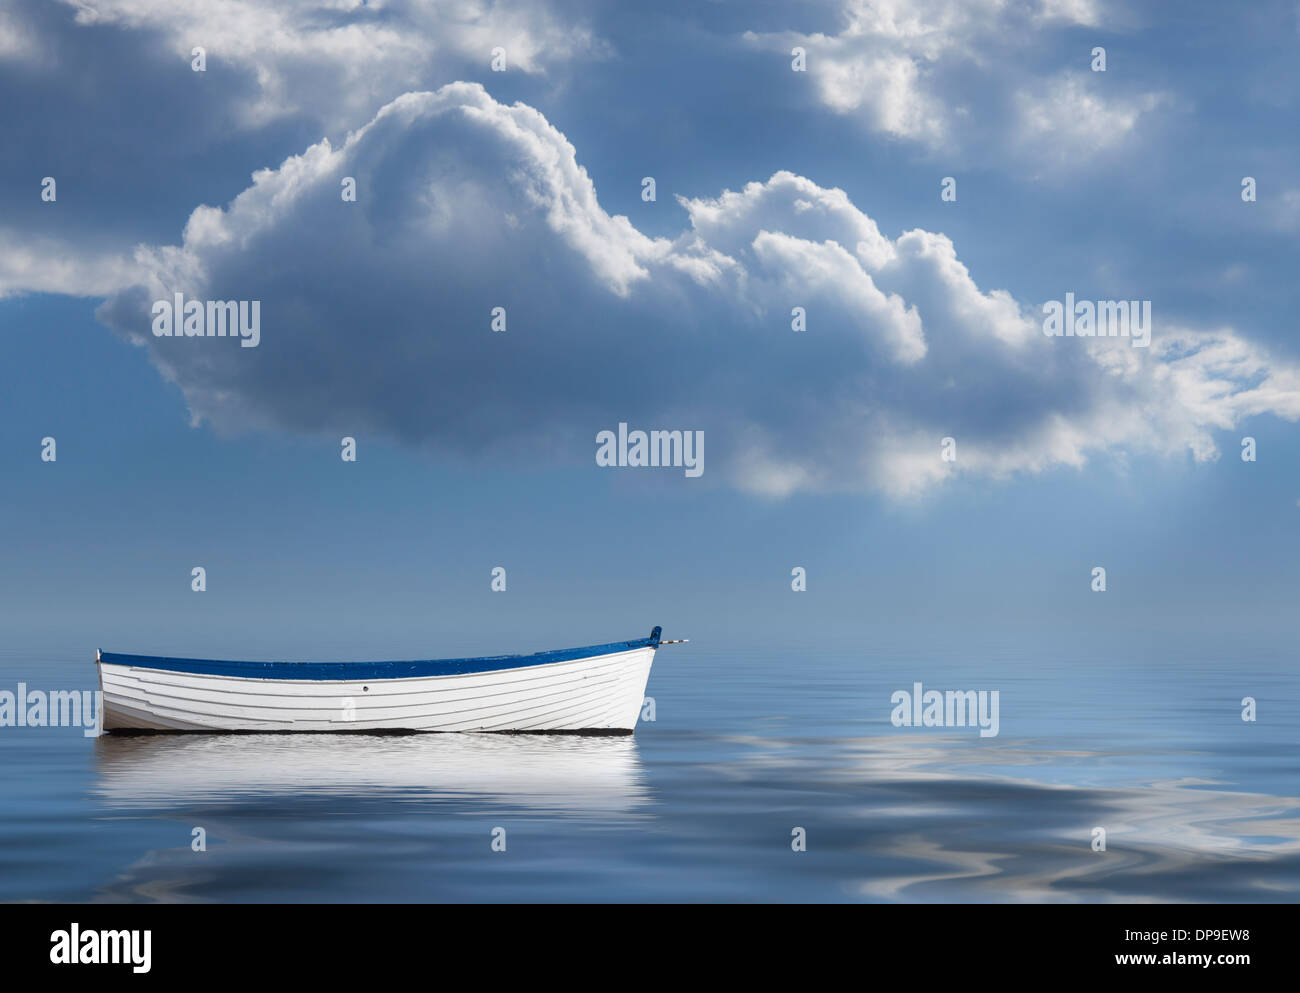 Loneliness, lack of leadership, lost, no direction, drifting conceptual image of empty rowing boat at sea - Stock Image